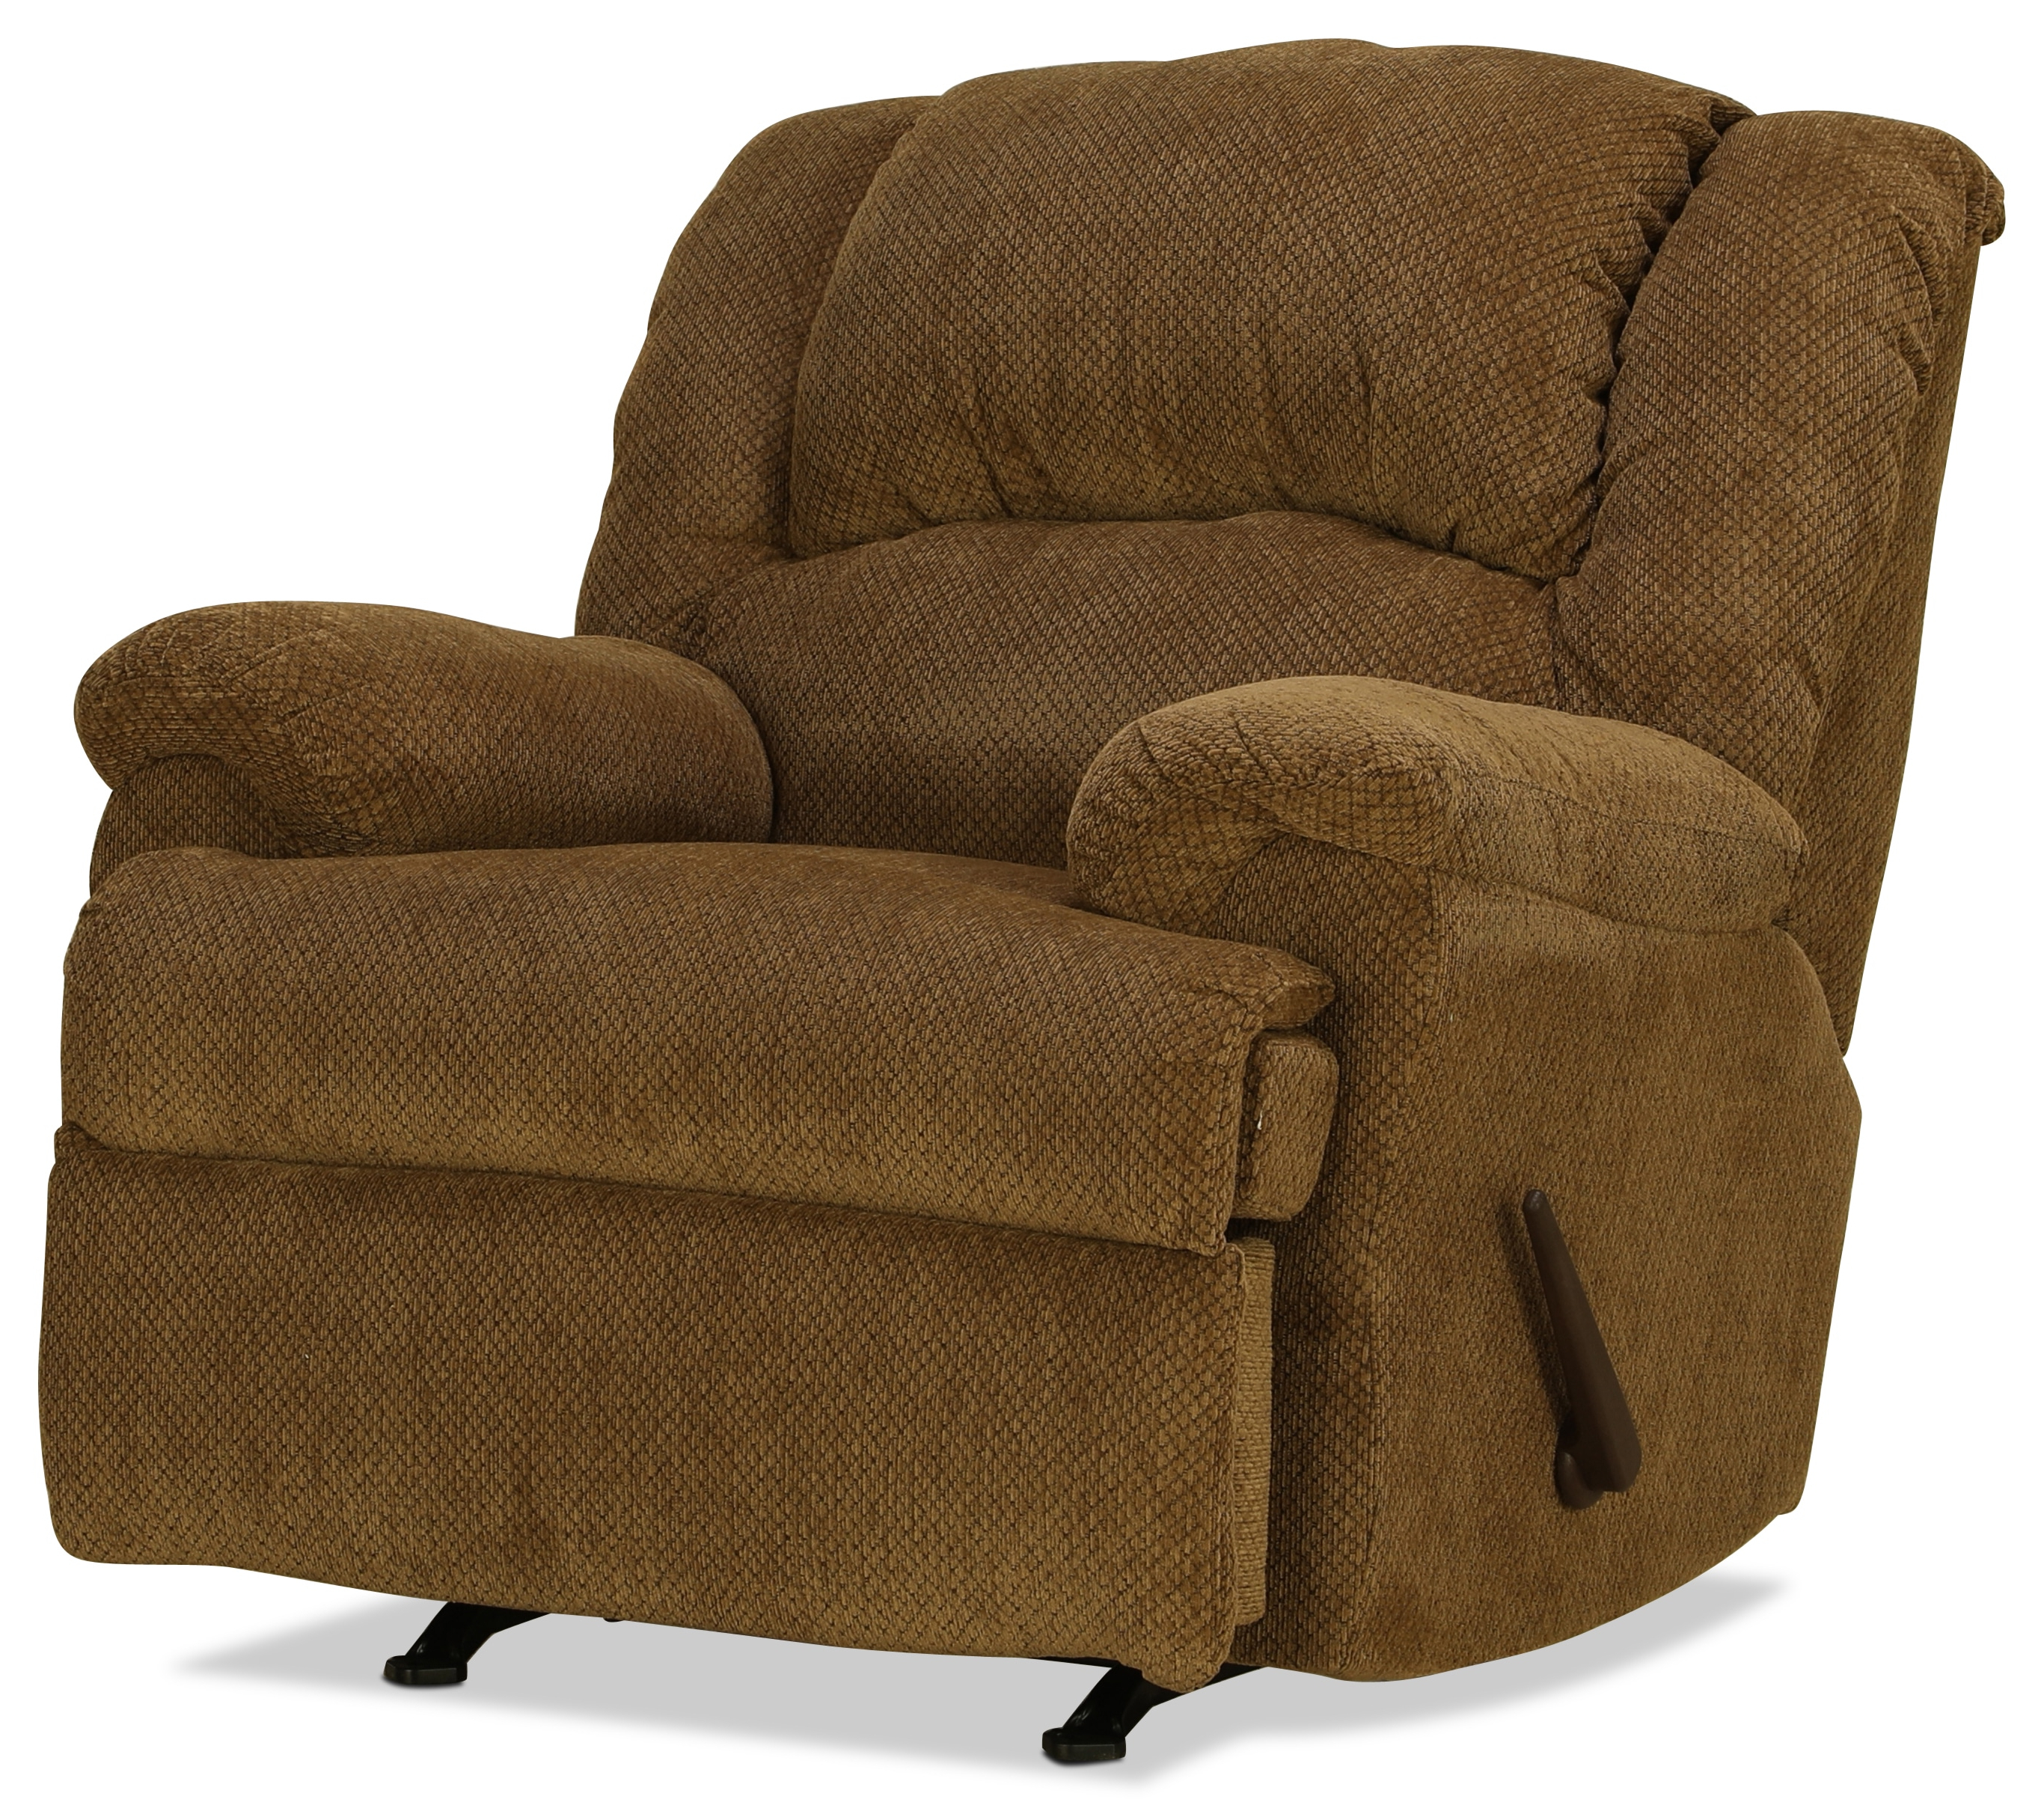 Well Known Decker Ii Fabric Swivel Glider Recliners Inside Decker Rocker Recliner – Mocha (View 2 of 20)